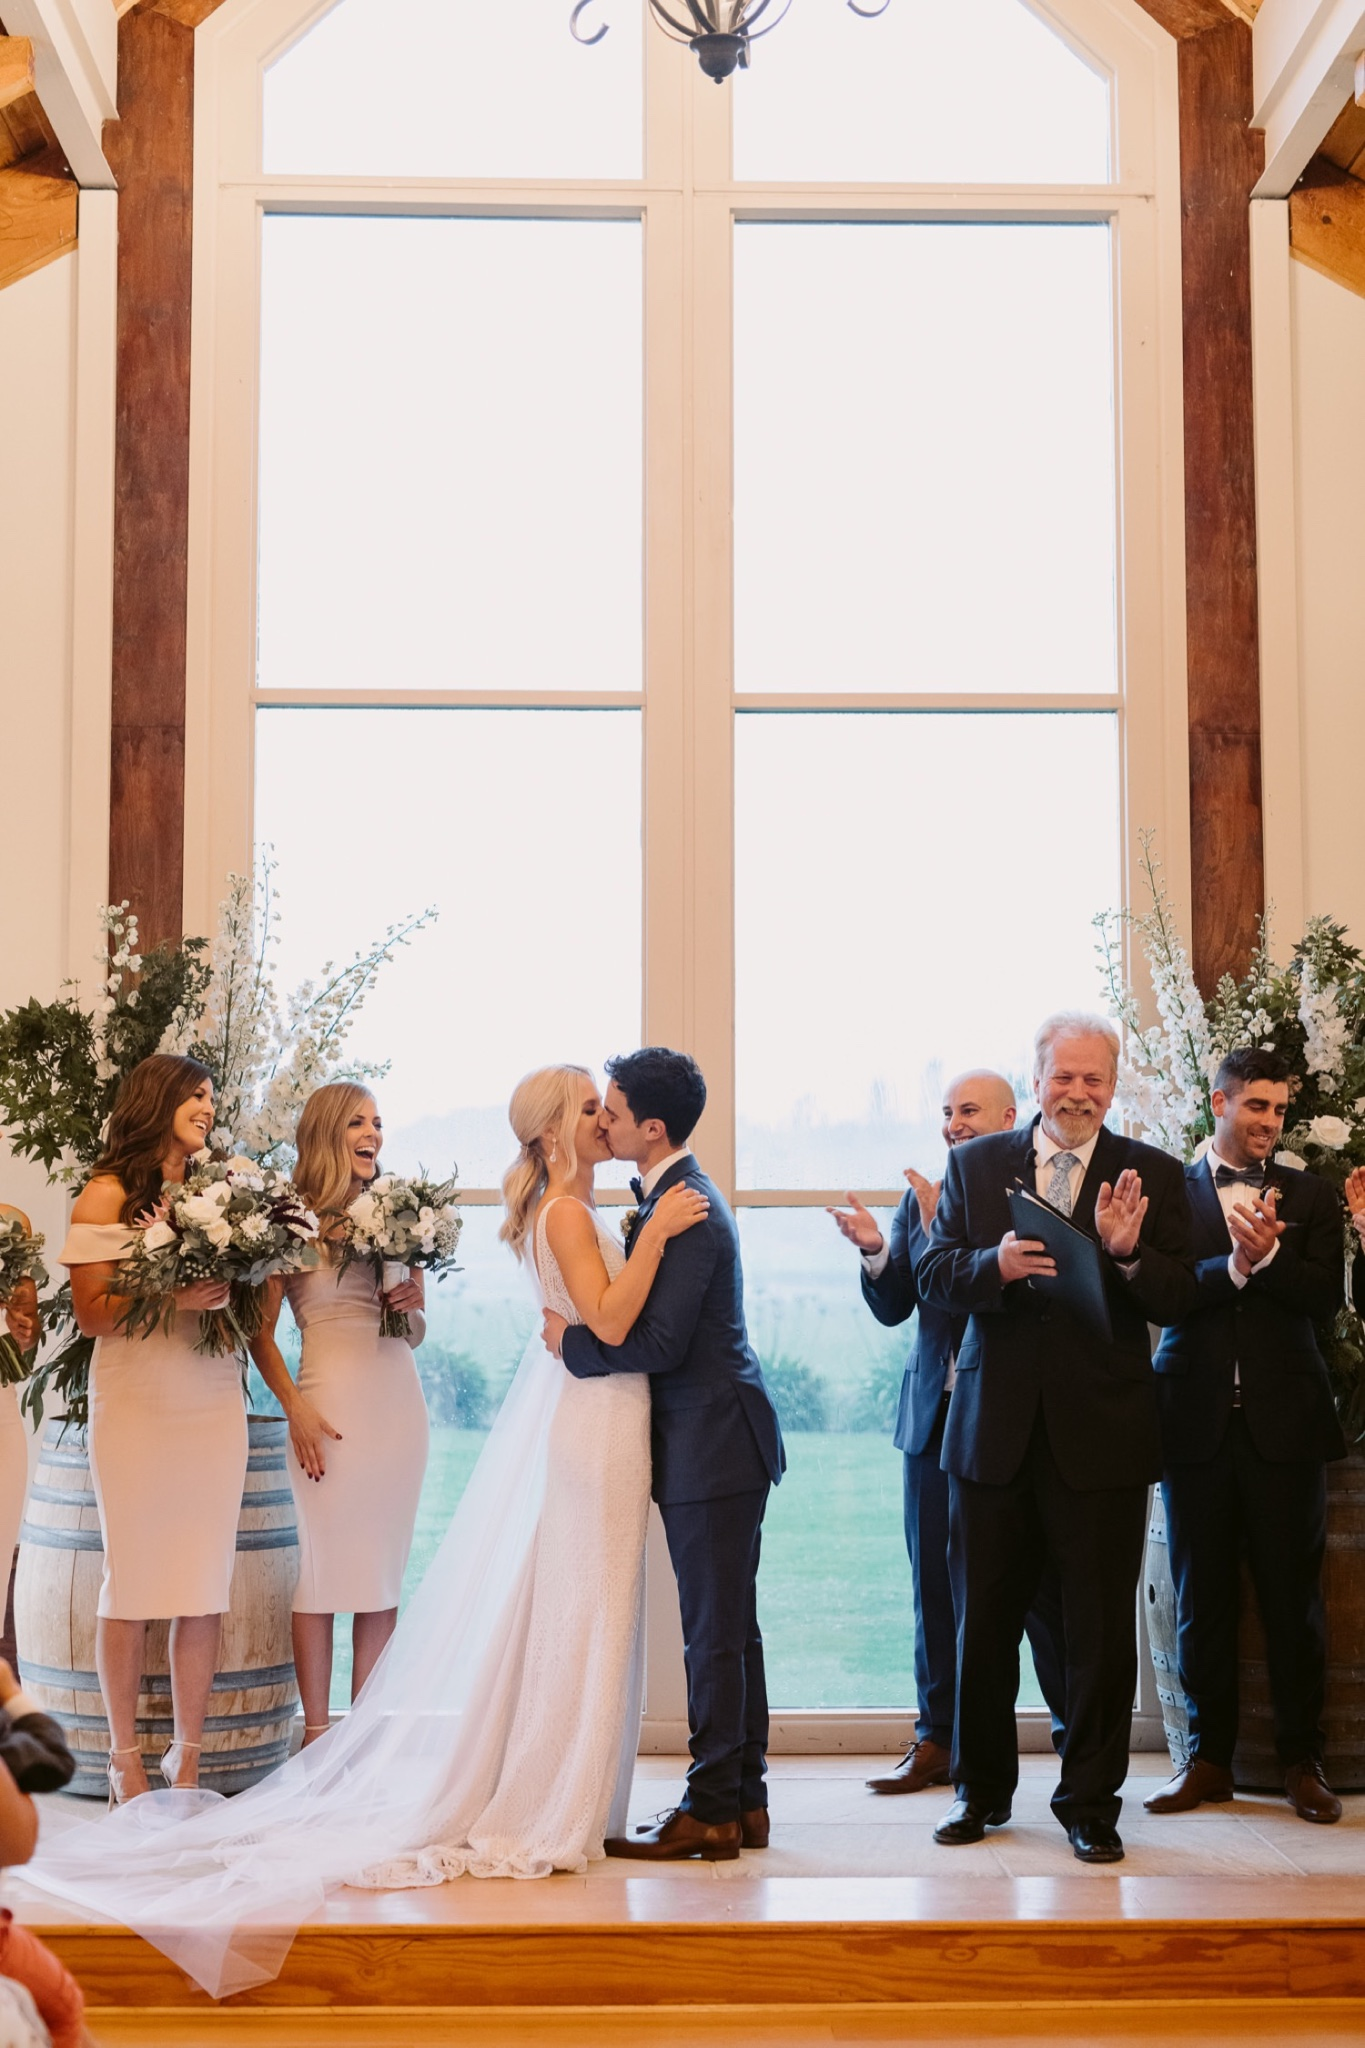 Immerse Yarra Valley Winery Wedding Photography57.jpg